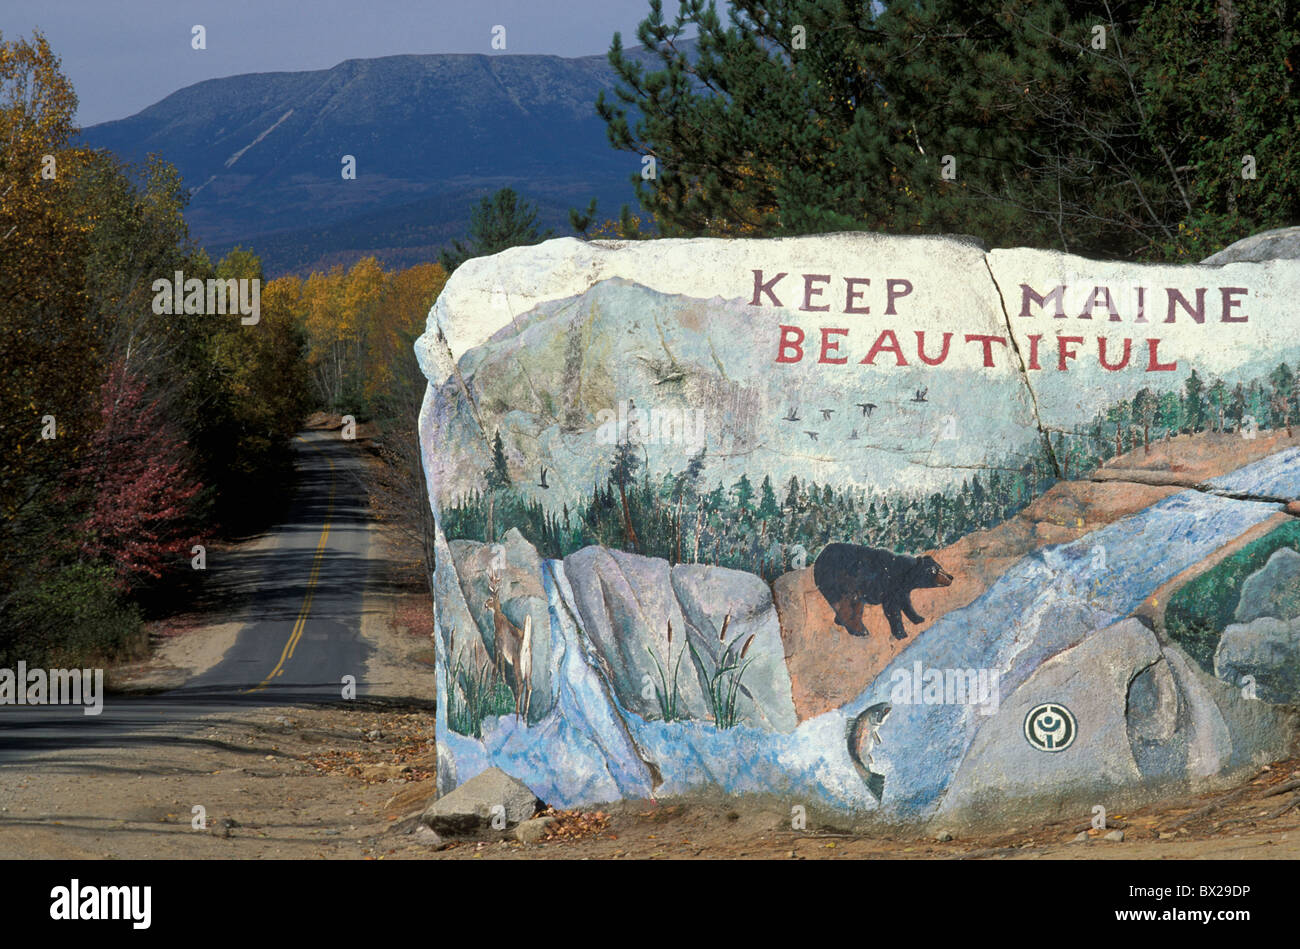 Keep Maine Beautiful tip indication message embassy environment environment protection tourism rock cliff paints - Stock Image